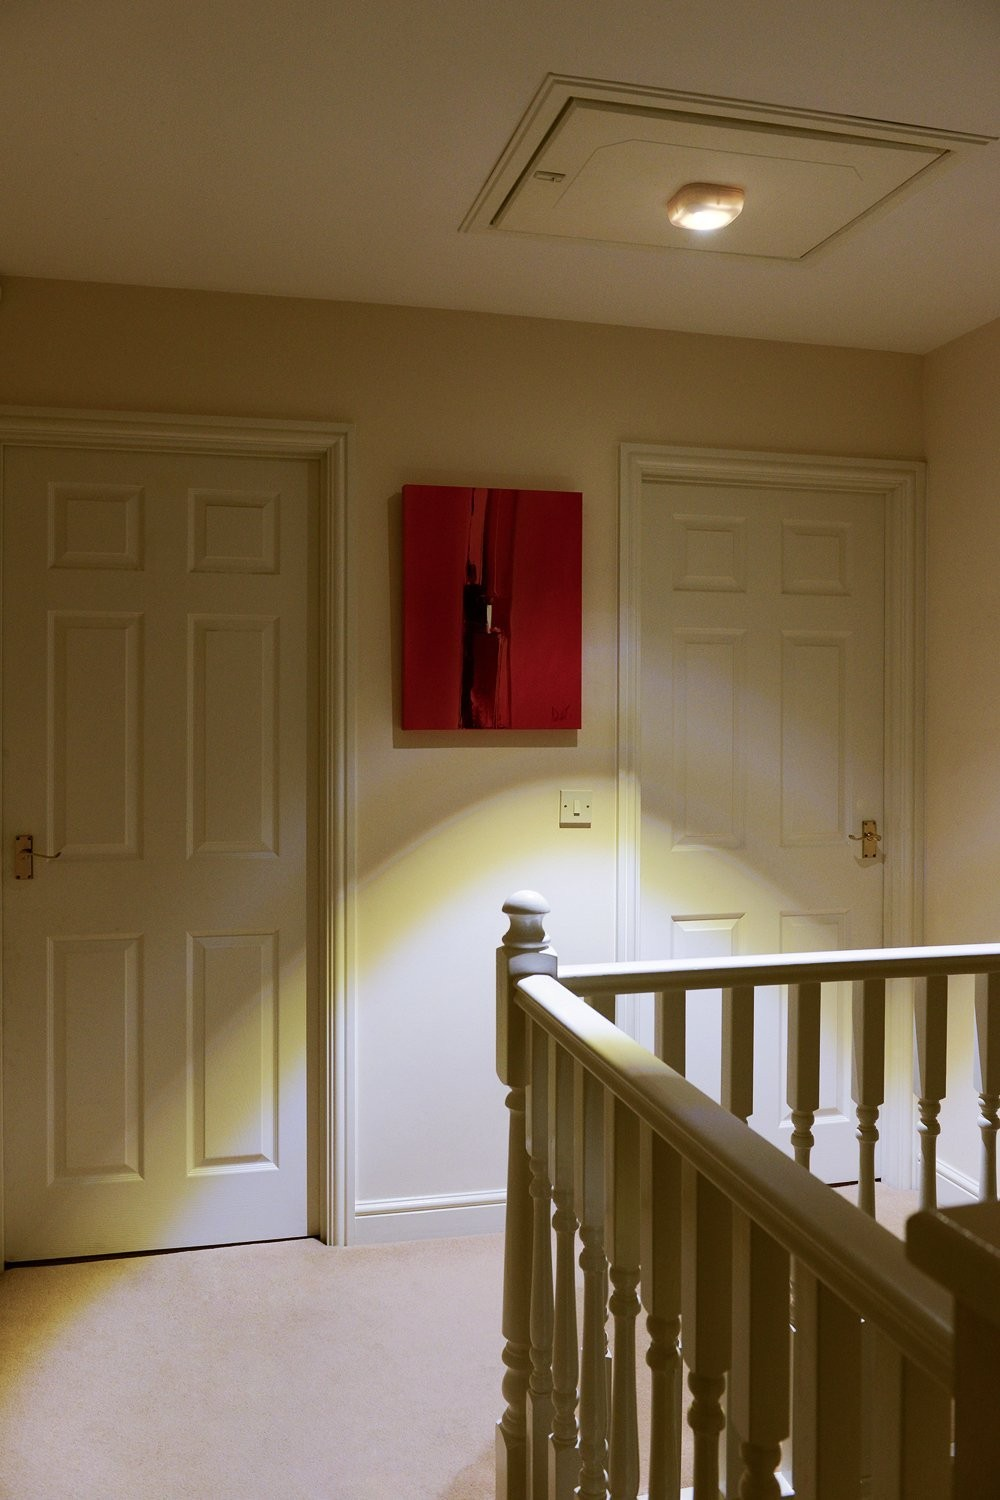 Battery operated ceiling lights - 10 tips for choosing | Warisan ...